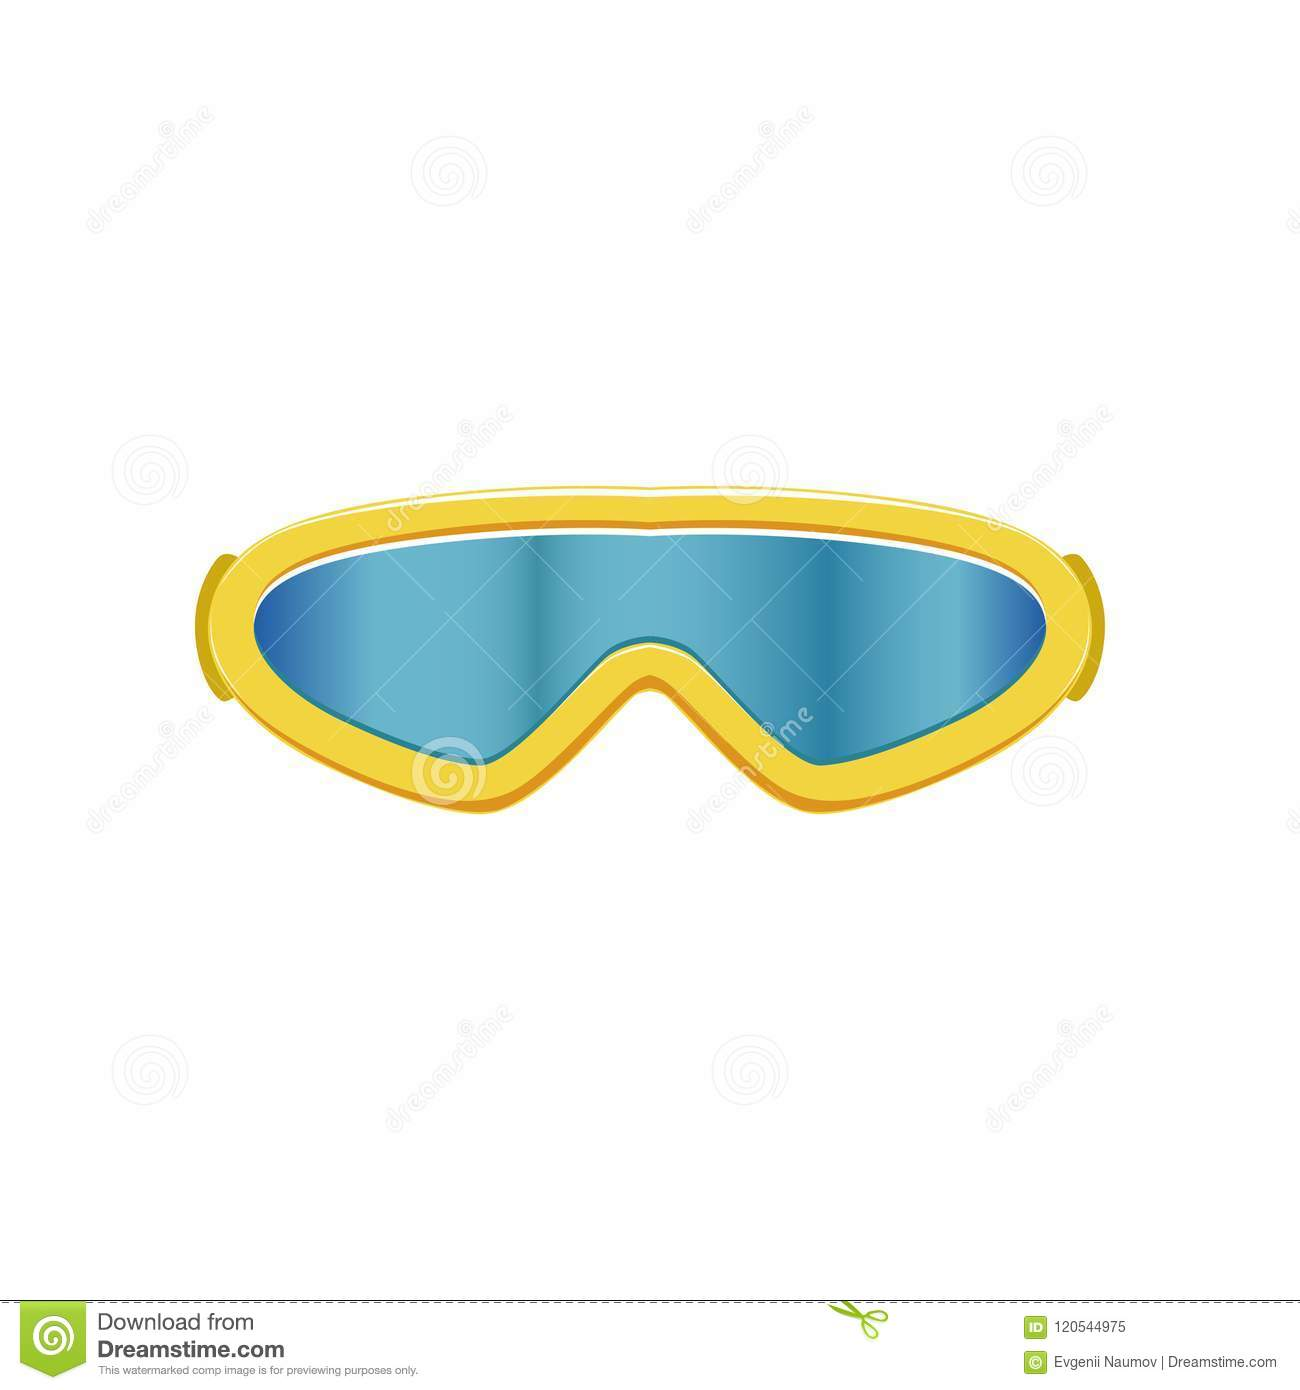 db20e8556ba2 Winter sport glasses with blue lenses and yellow frame. Protective eyewear  for sportsmen. Graphic design for mobile app. Colored flat vector  illustration ...